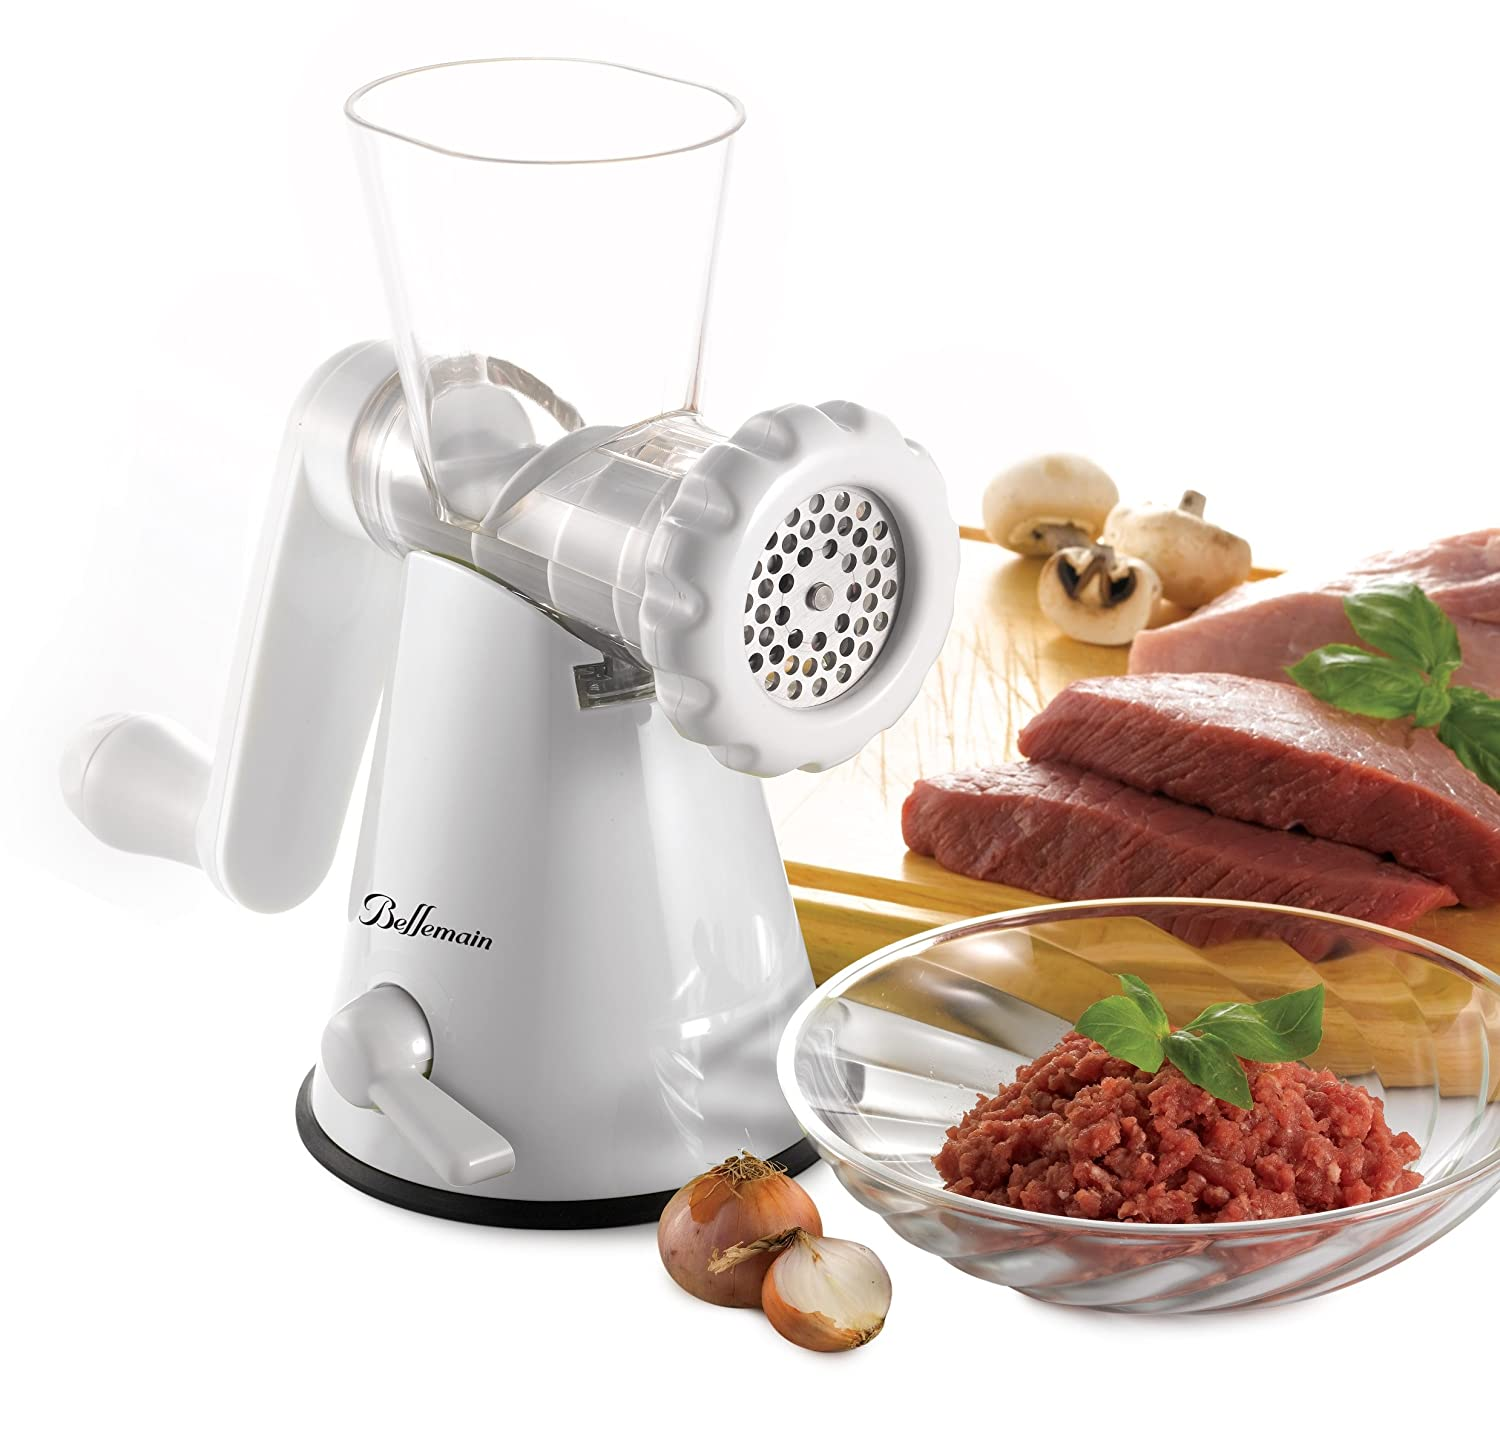 Top 5 Best Manual Meat Grinders For Your Home Kitchen 6